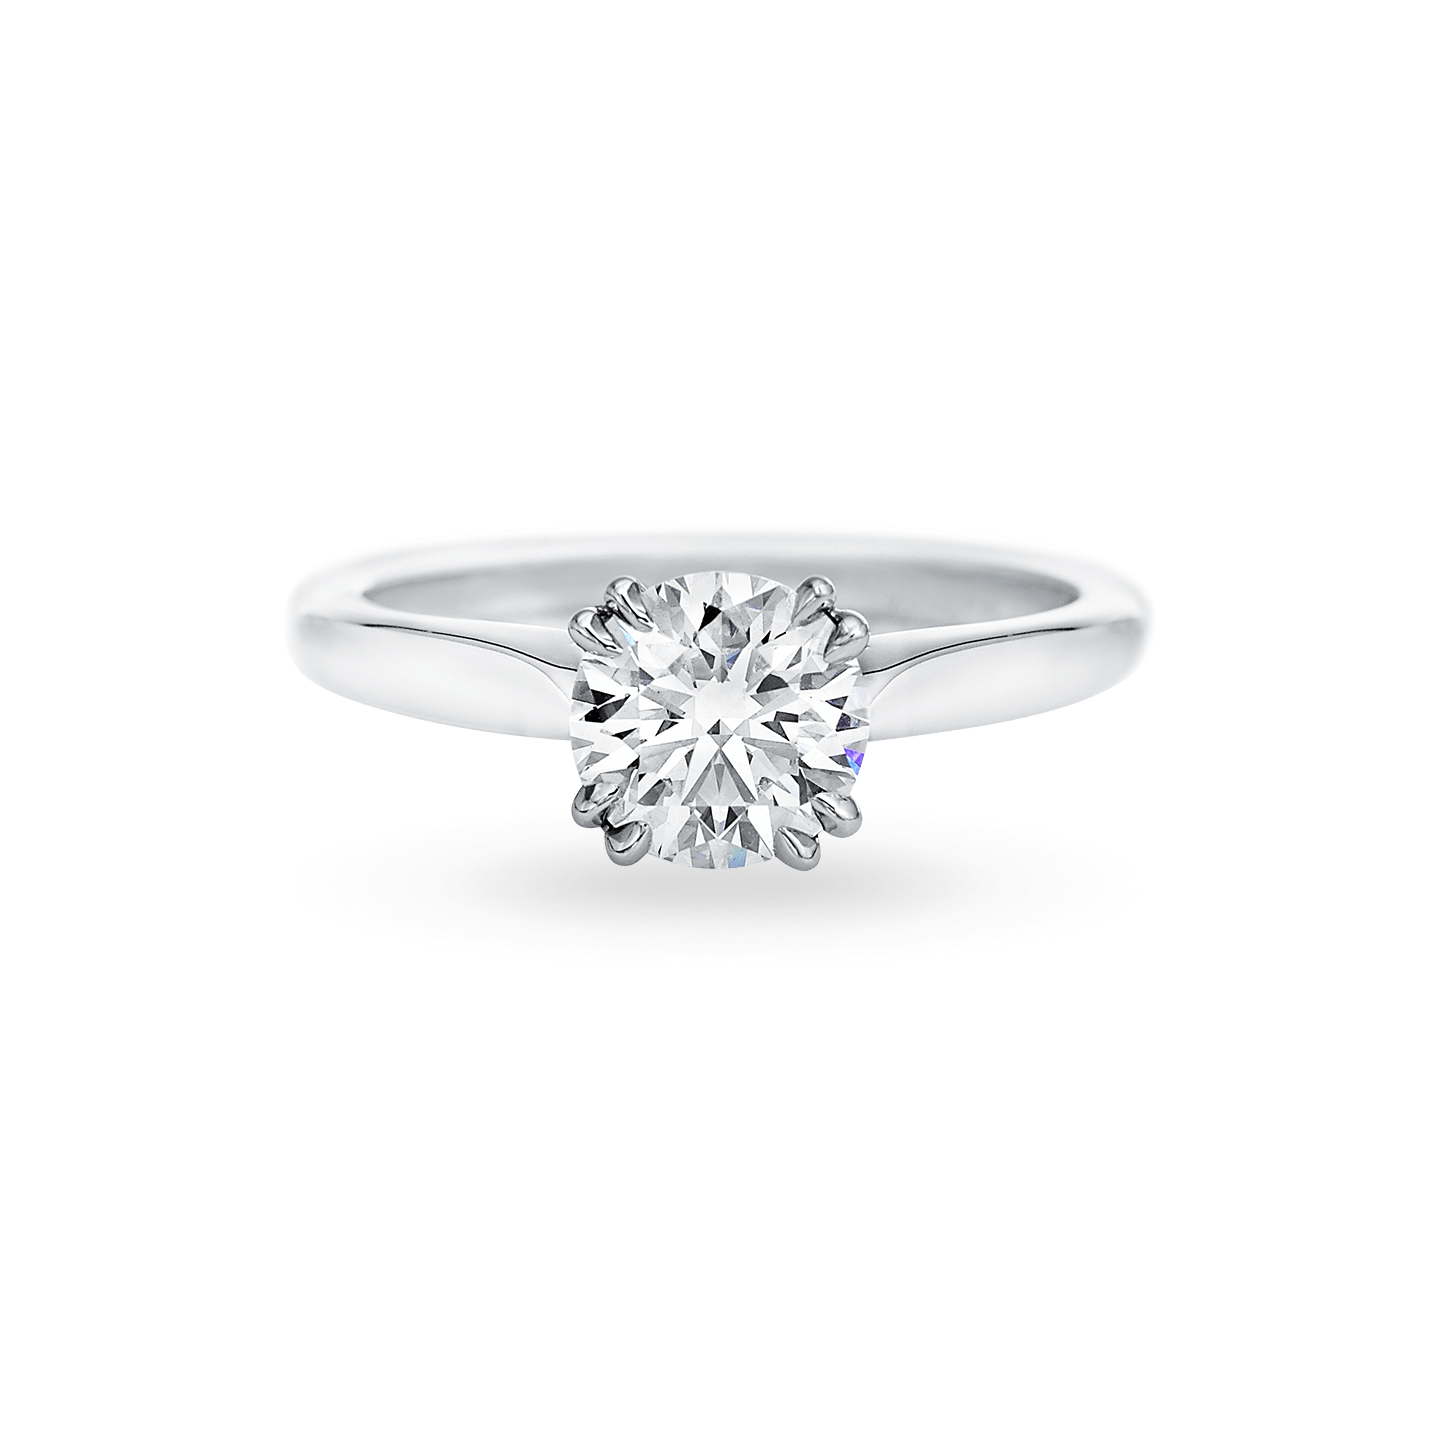 Solitaire Round Brilliant Engagement Ring, Product Image 1